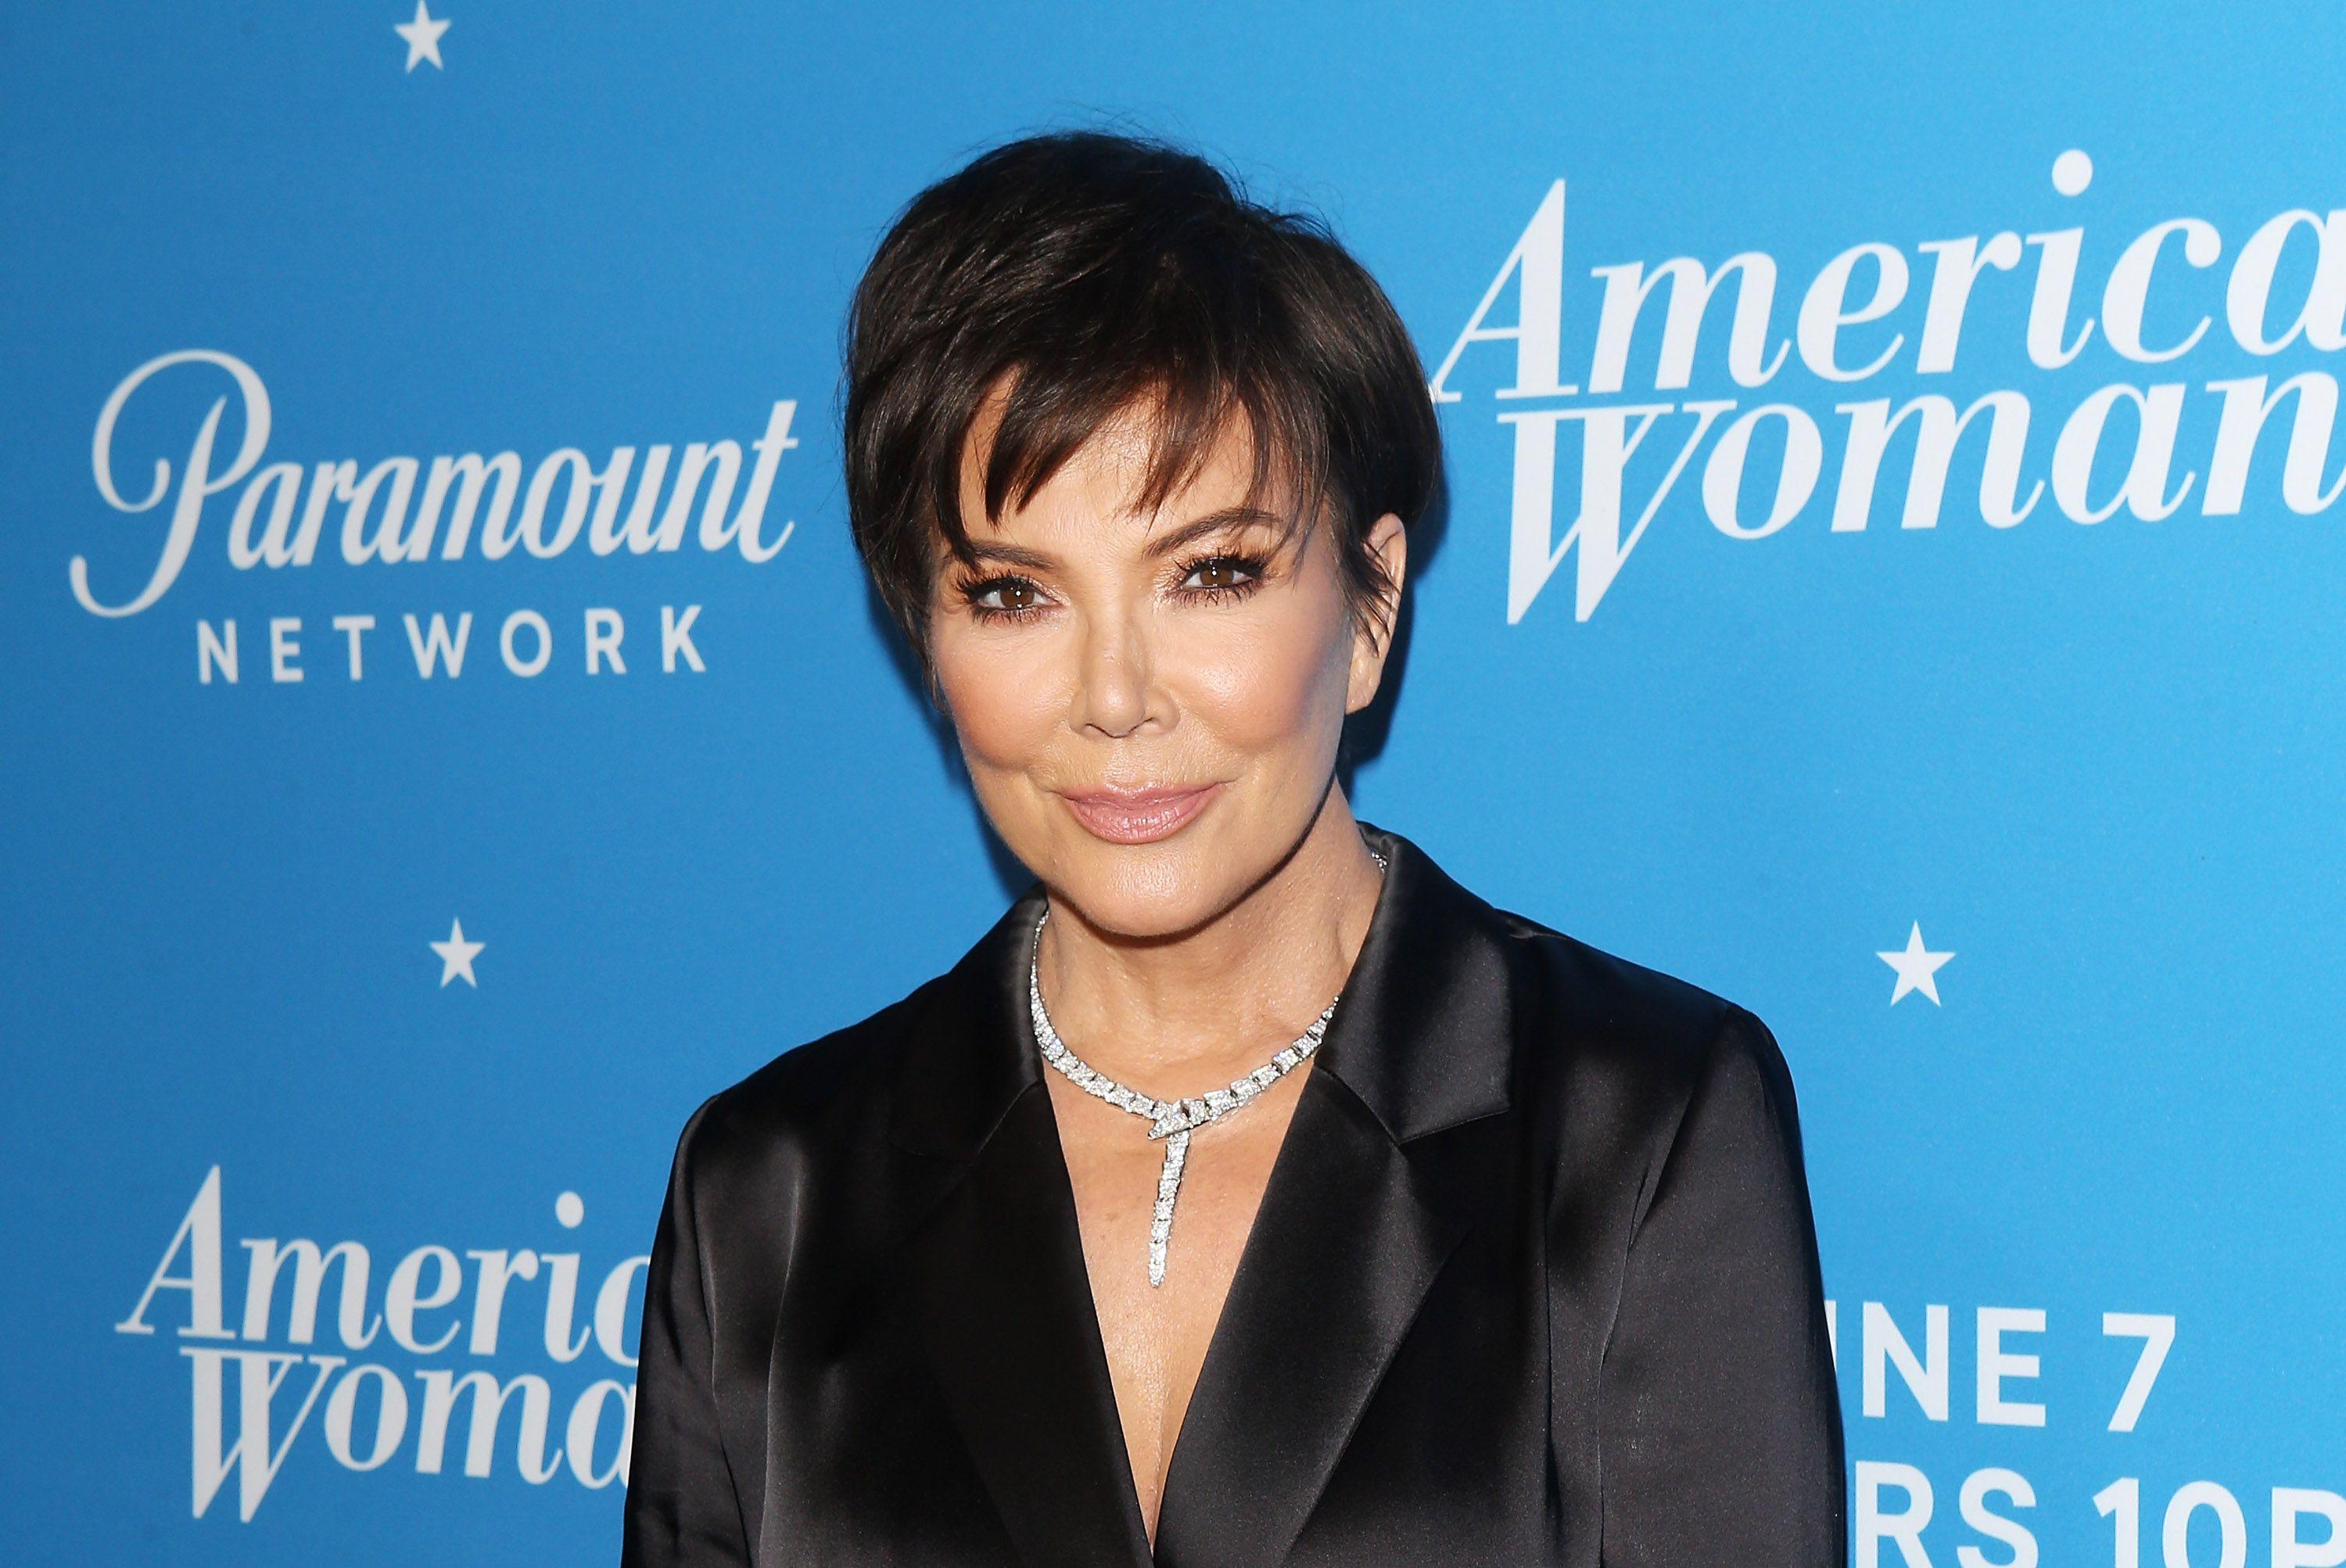 Kris Jenner Shares Her Breast Cancer Screening—And Reminds Fans to Get a Mammogram